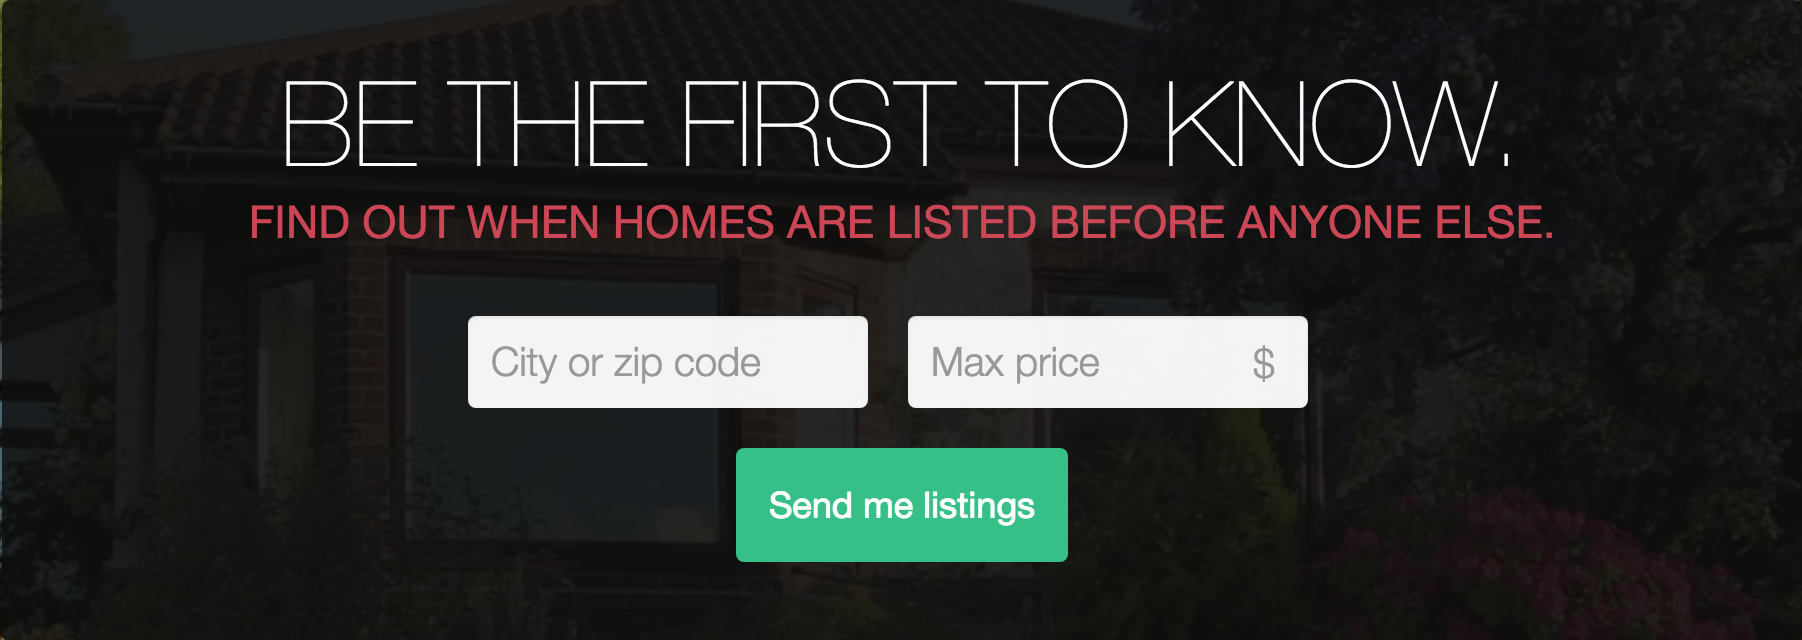 Be the first to know with real estate tools for buyers.